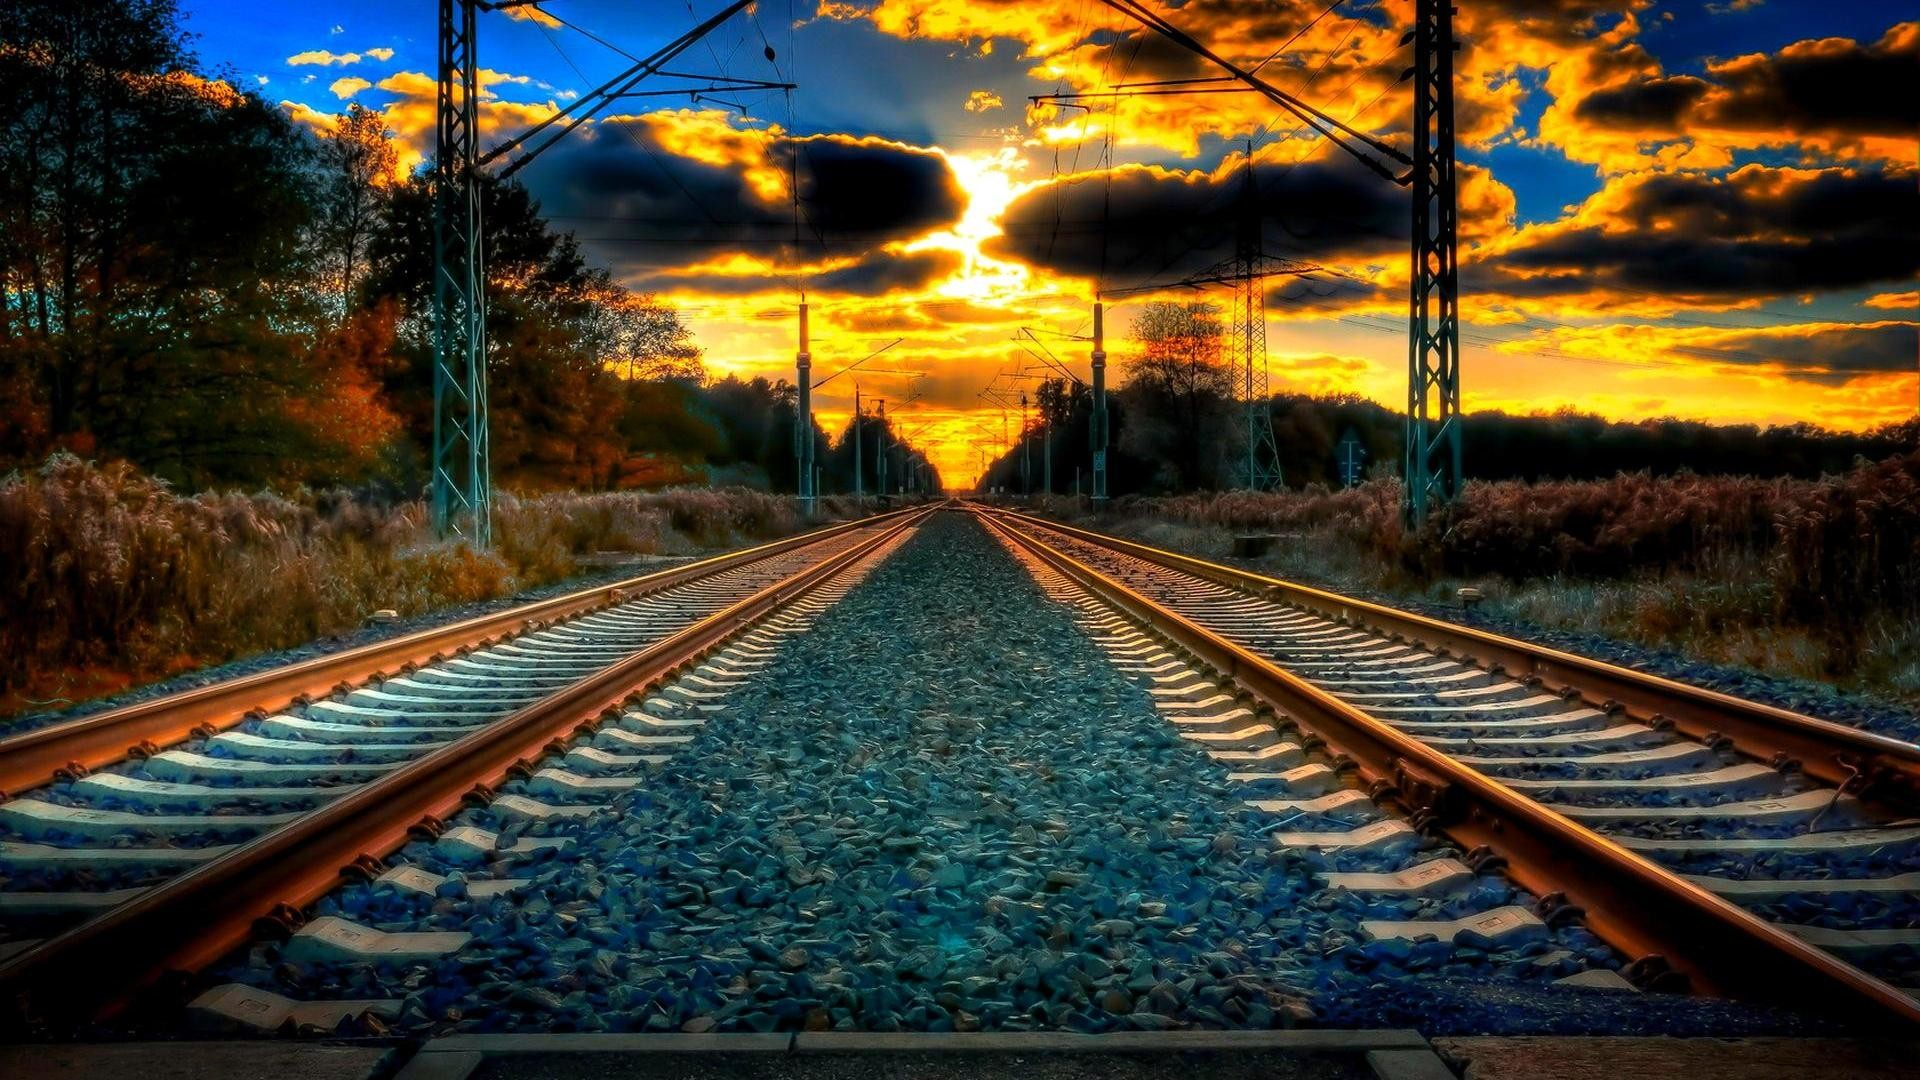 HD Train Tracks Wallpaper 57 Images